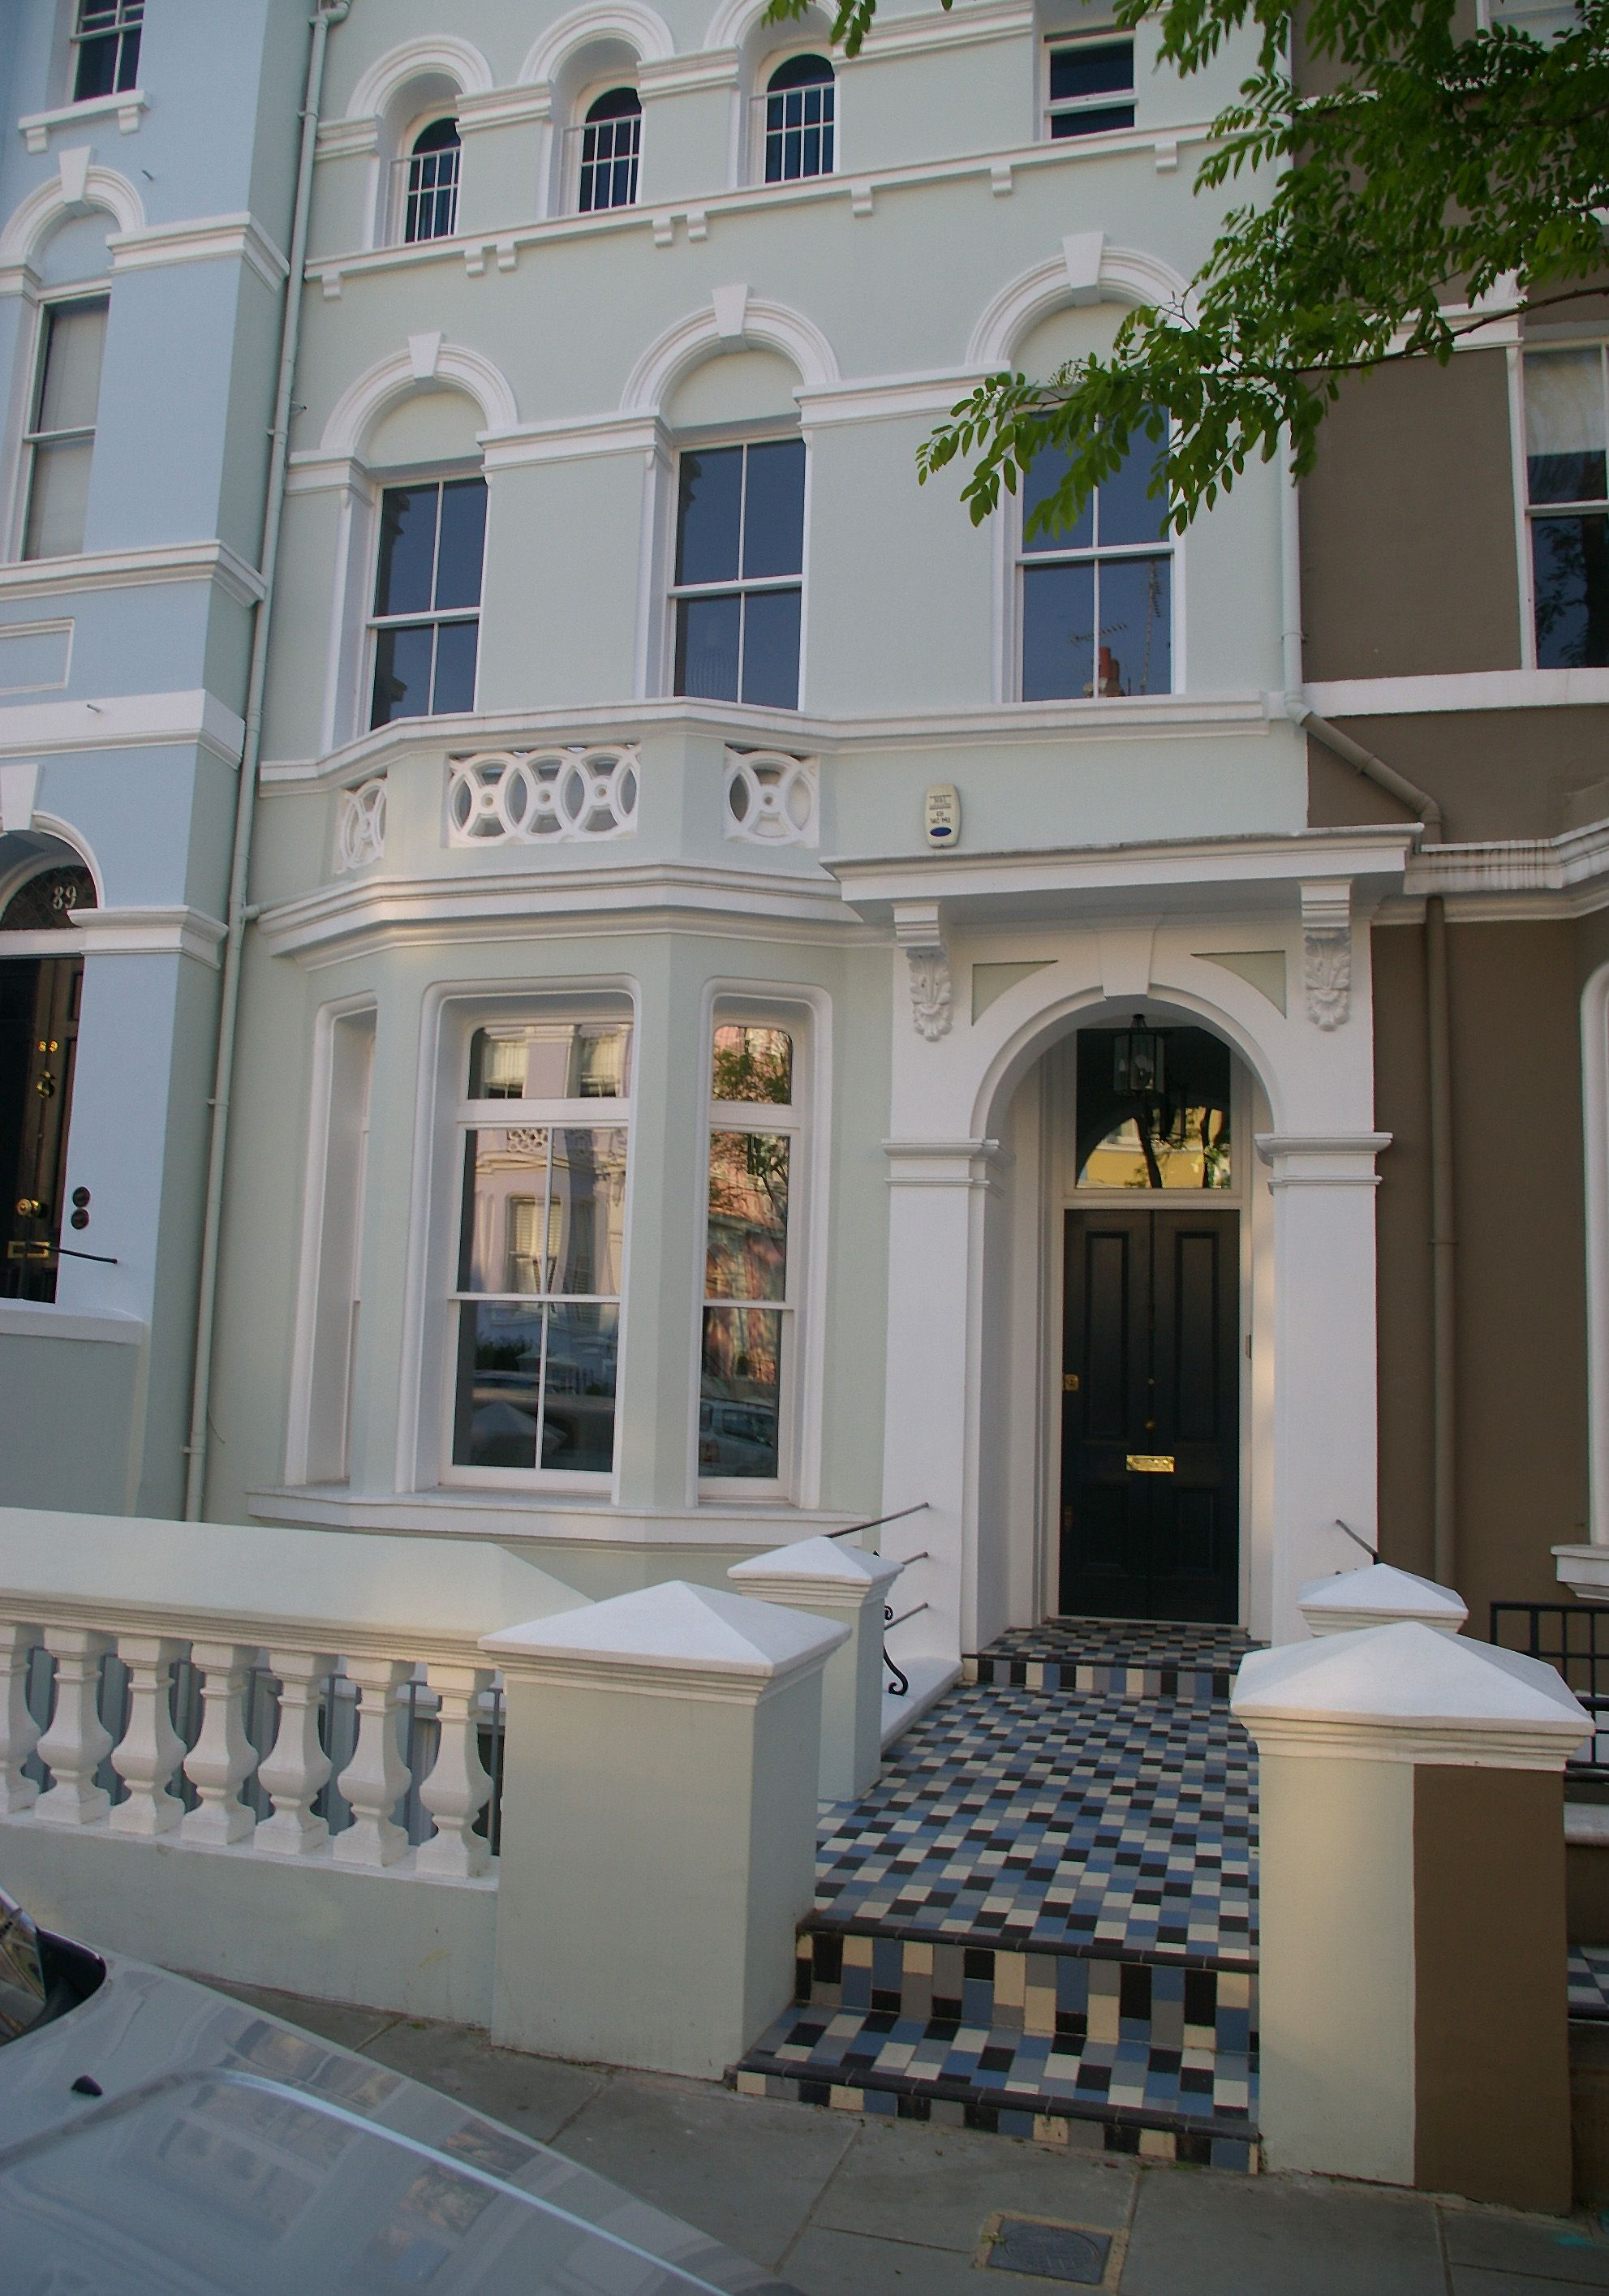 A Walking Tour Of Notting Hill Movie Locations - Colorful-home-interior-on-portland-road-in-london